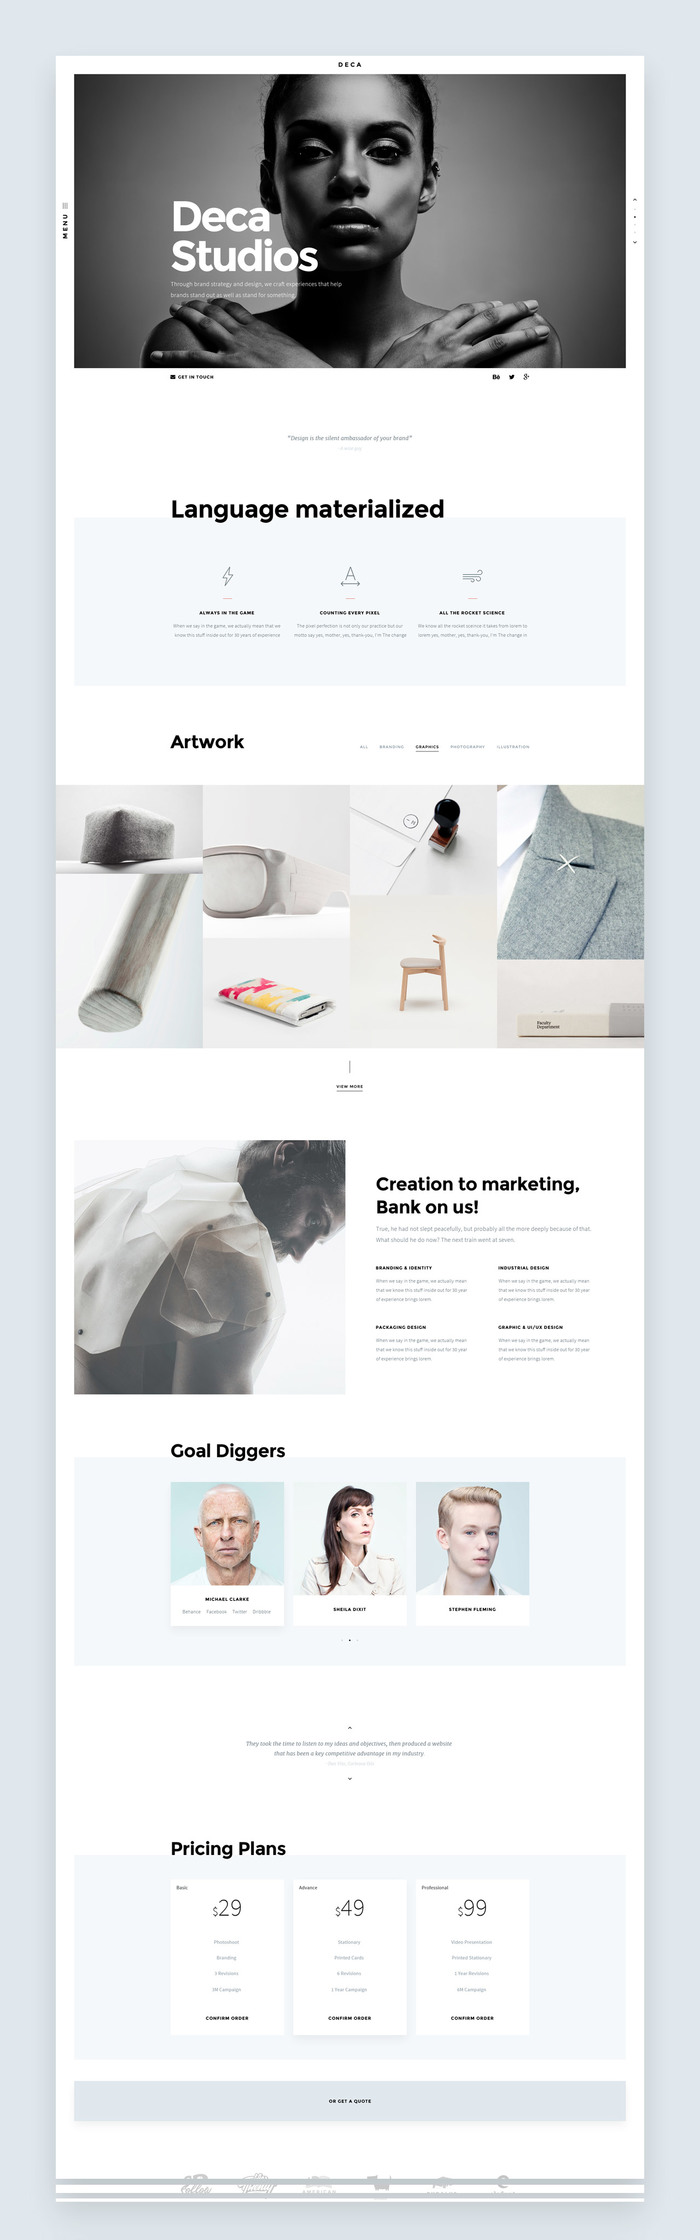 One of the 10+ Homepages. Minimal vibe with limited design.